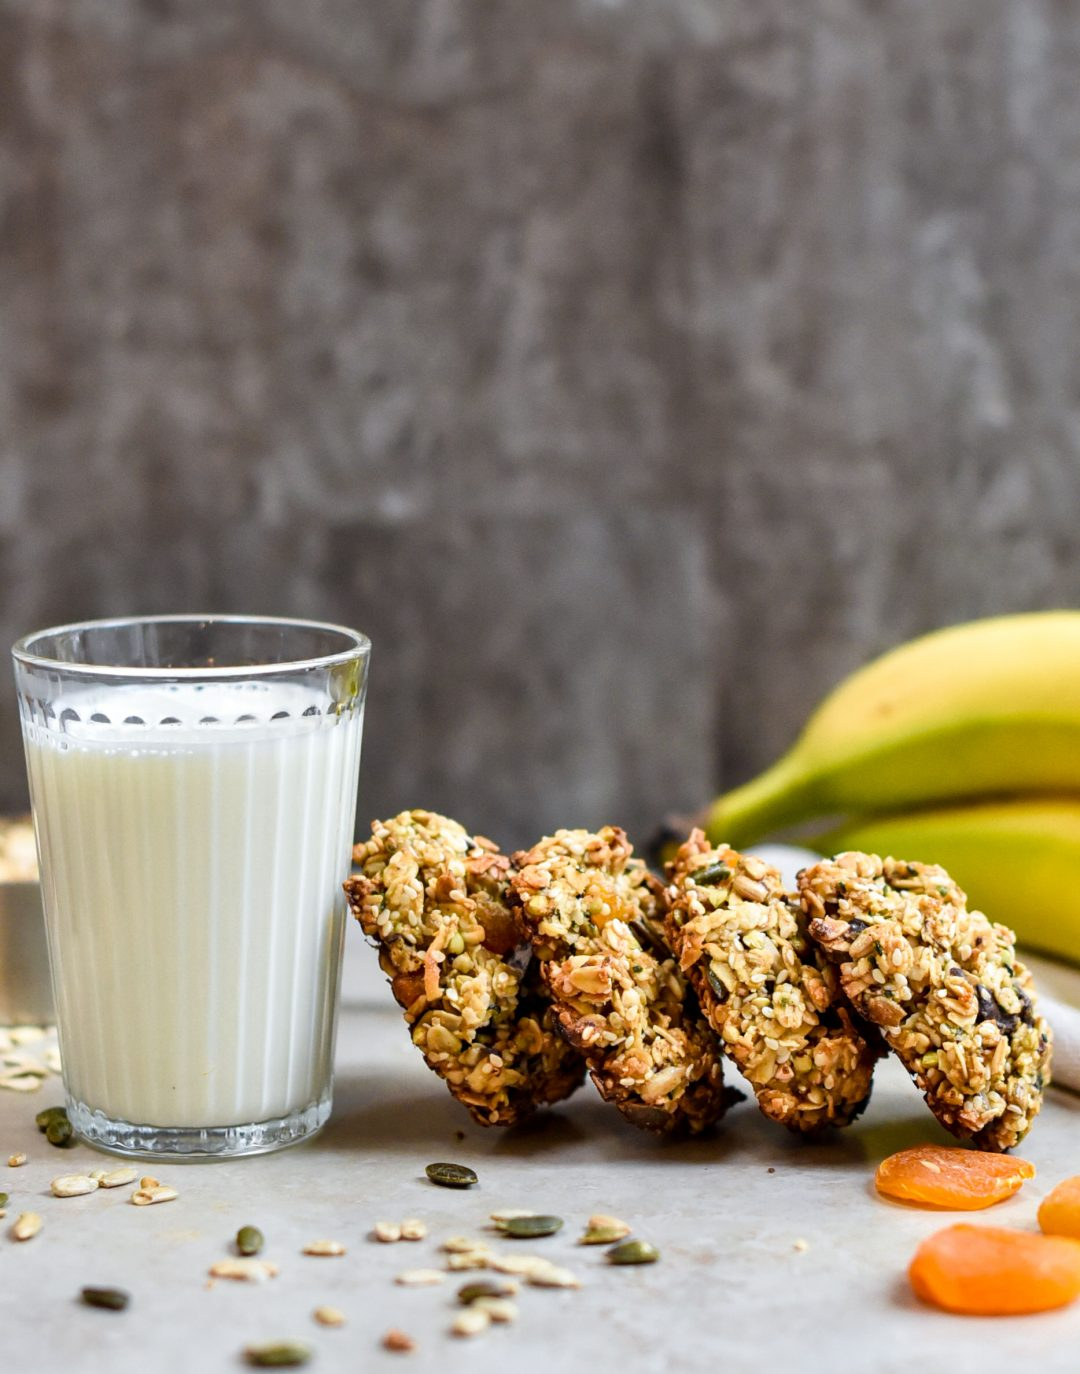 granola cookies leaning against glass of milk with bananas and seeds